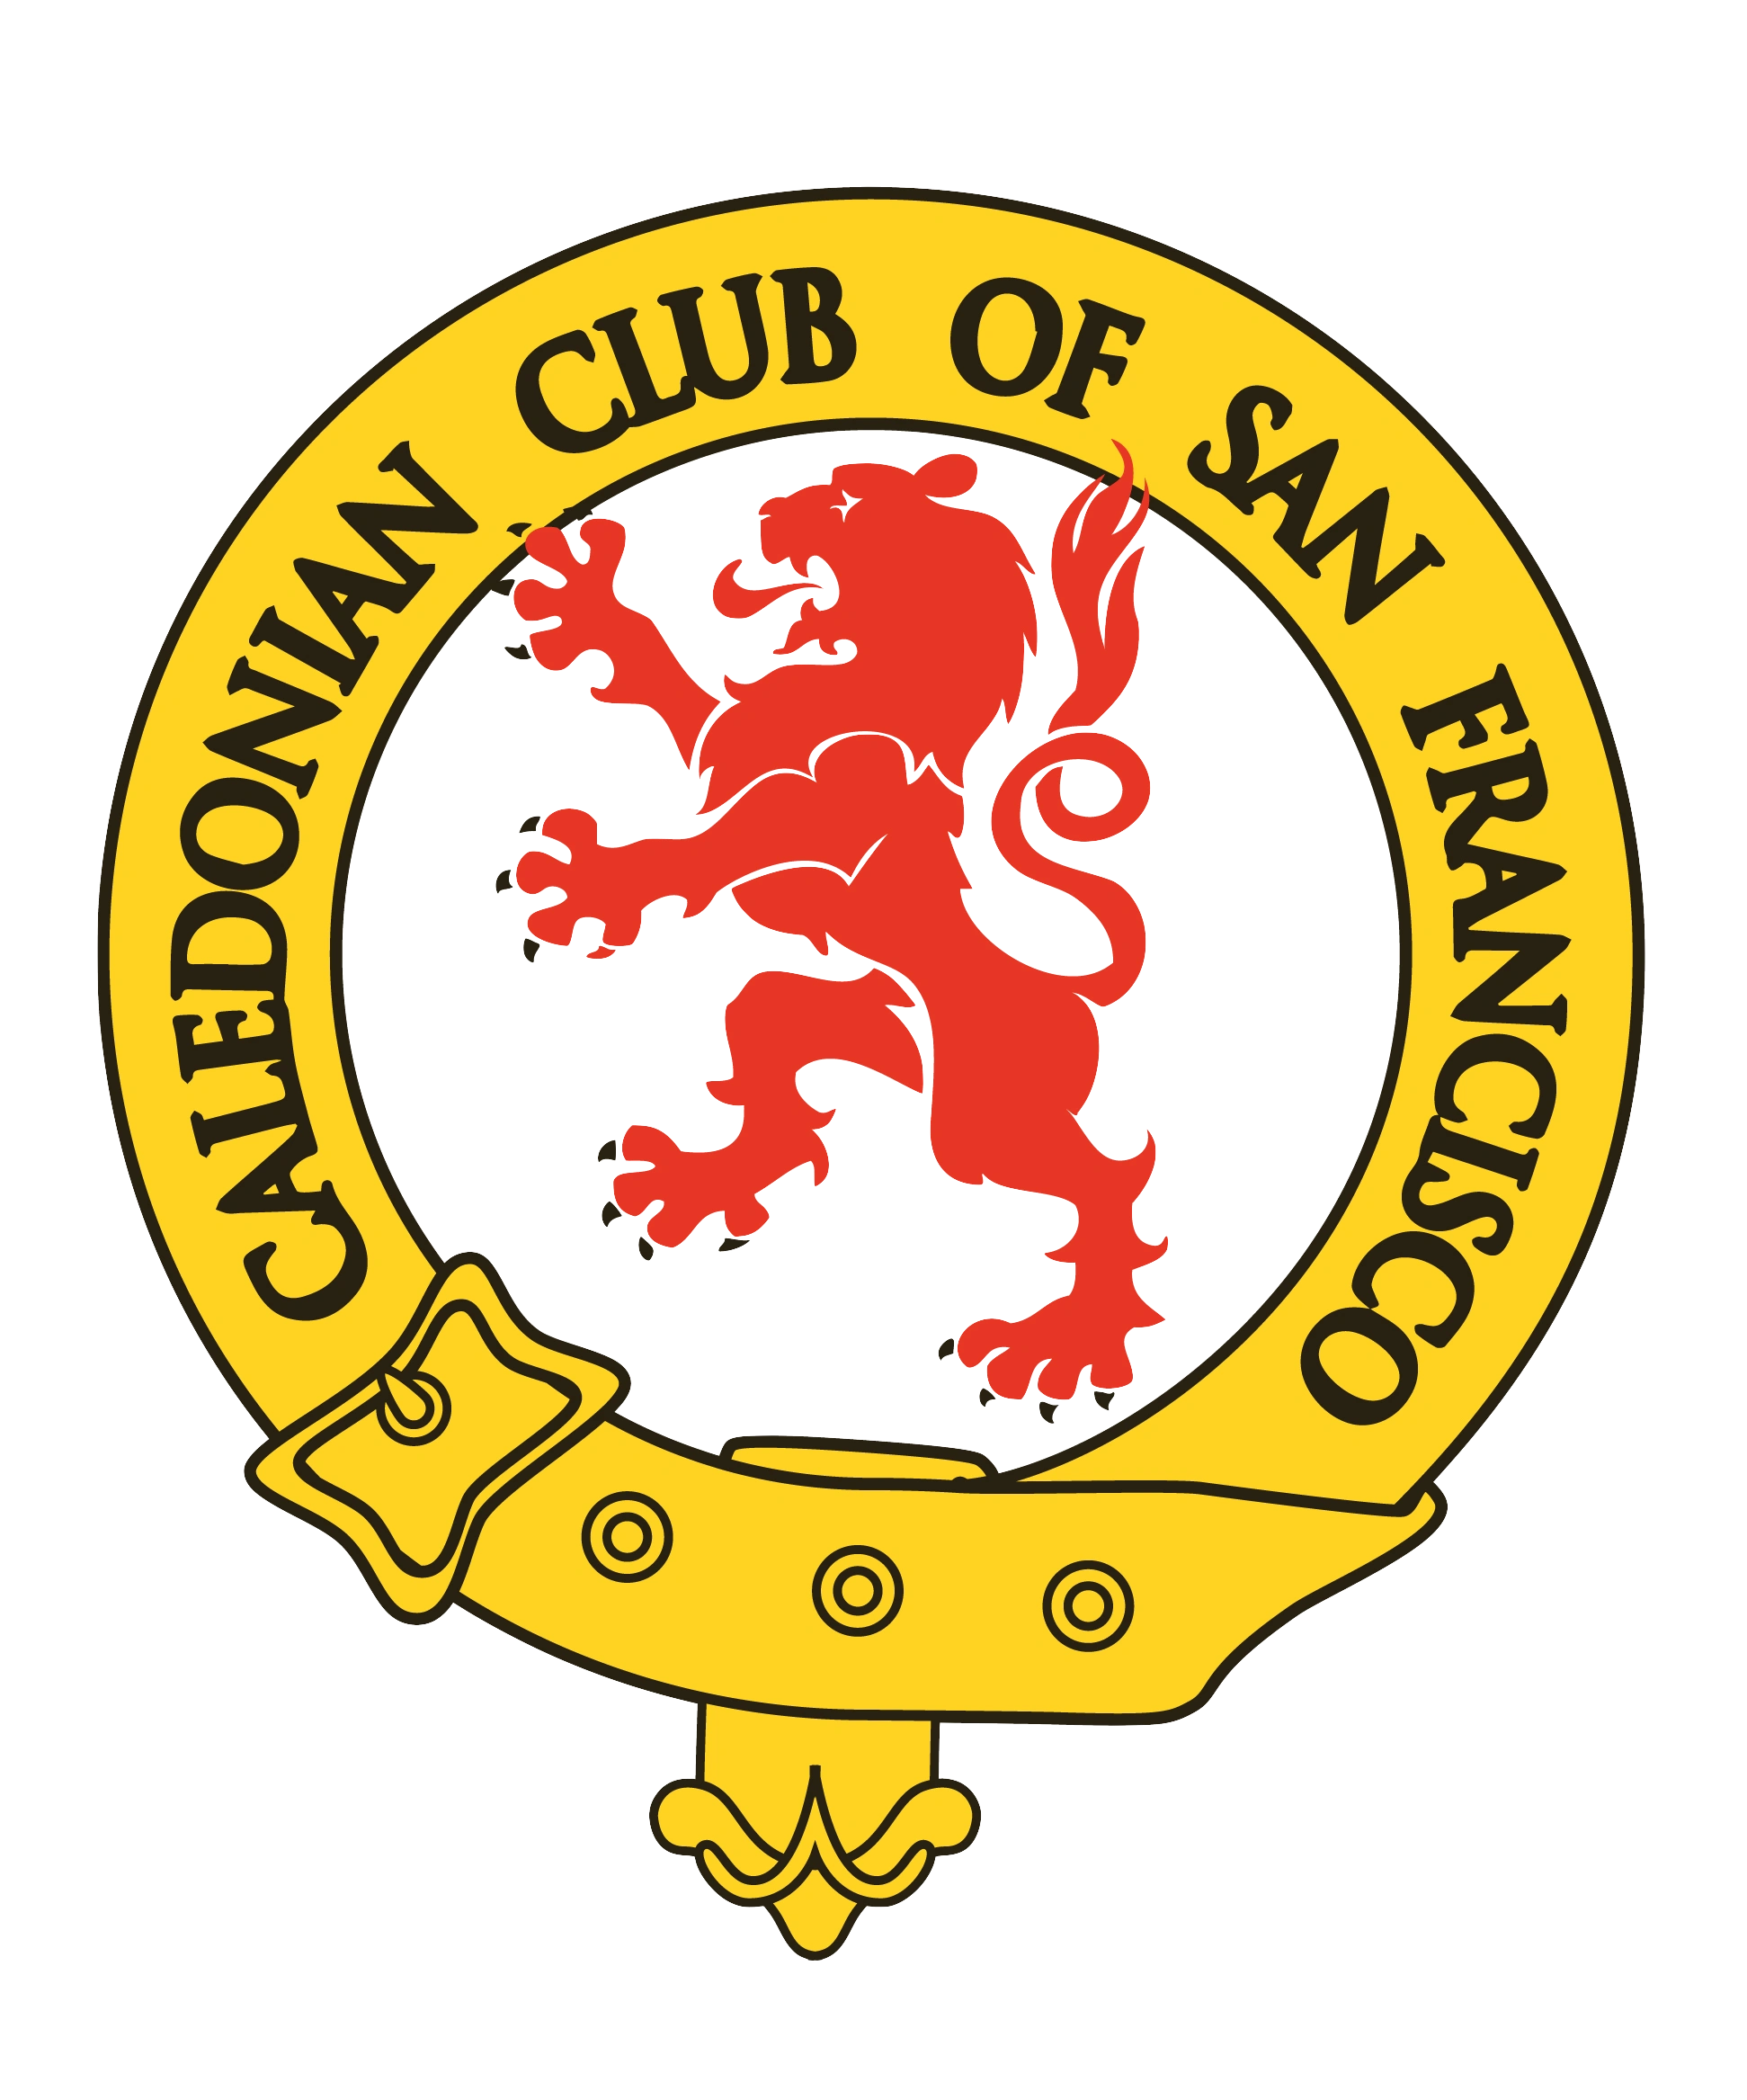 Caledonian Club of San Francisco - Scottish Highland Gathering & Games